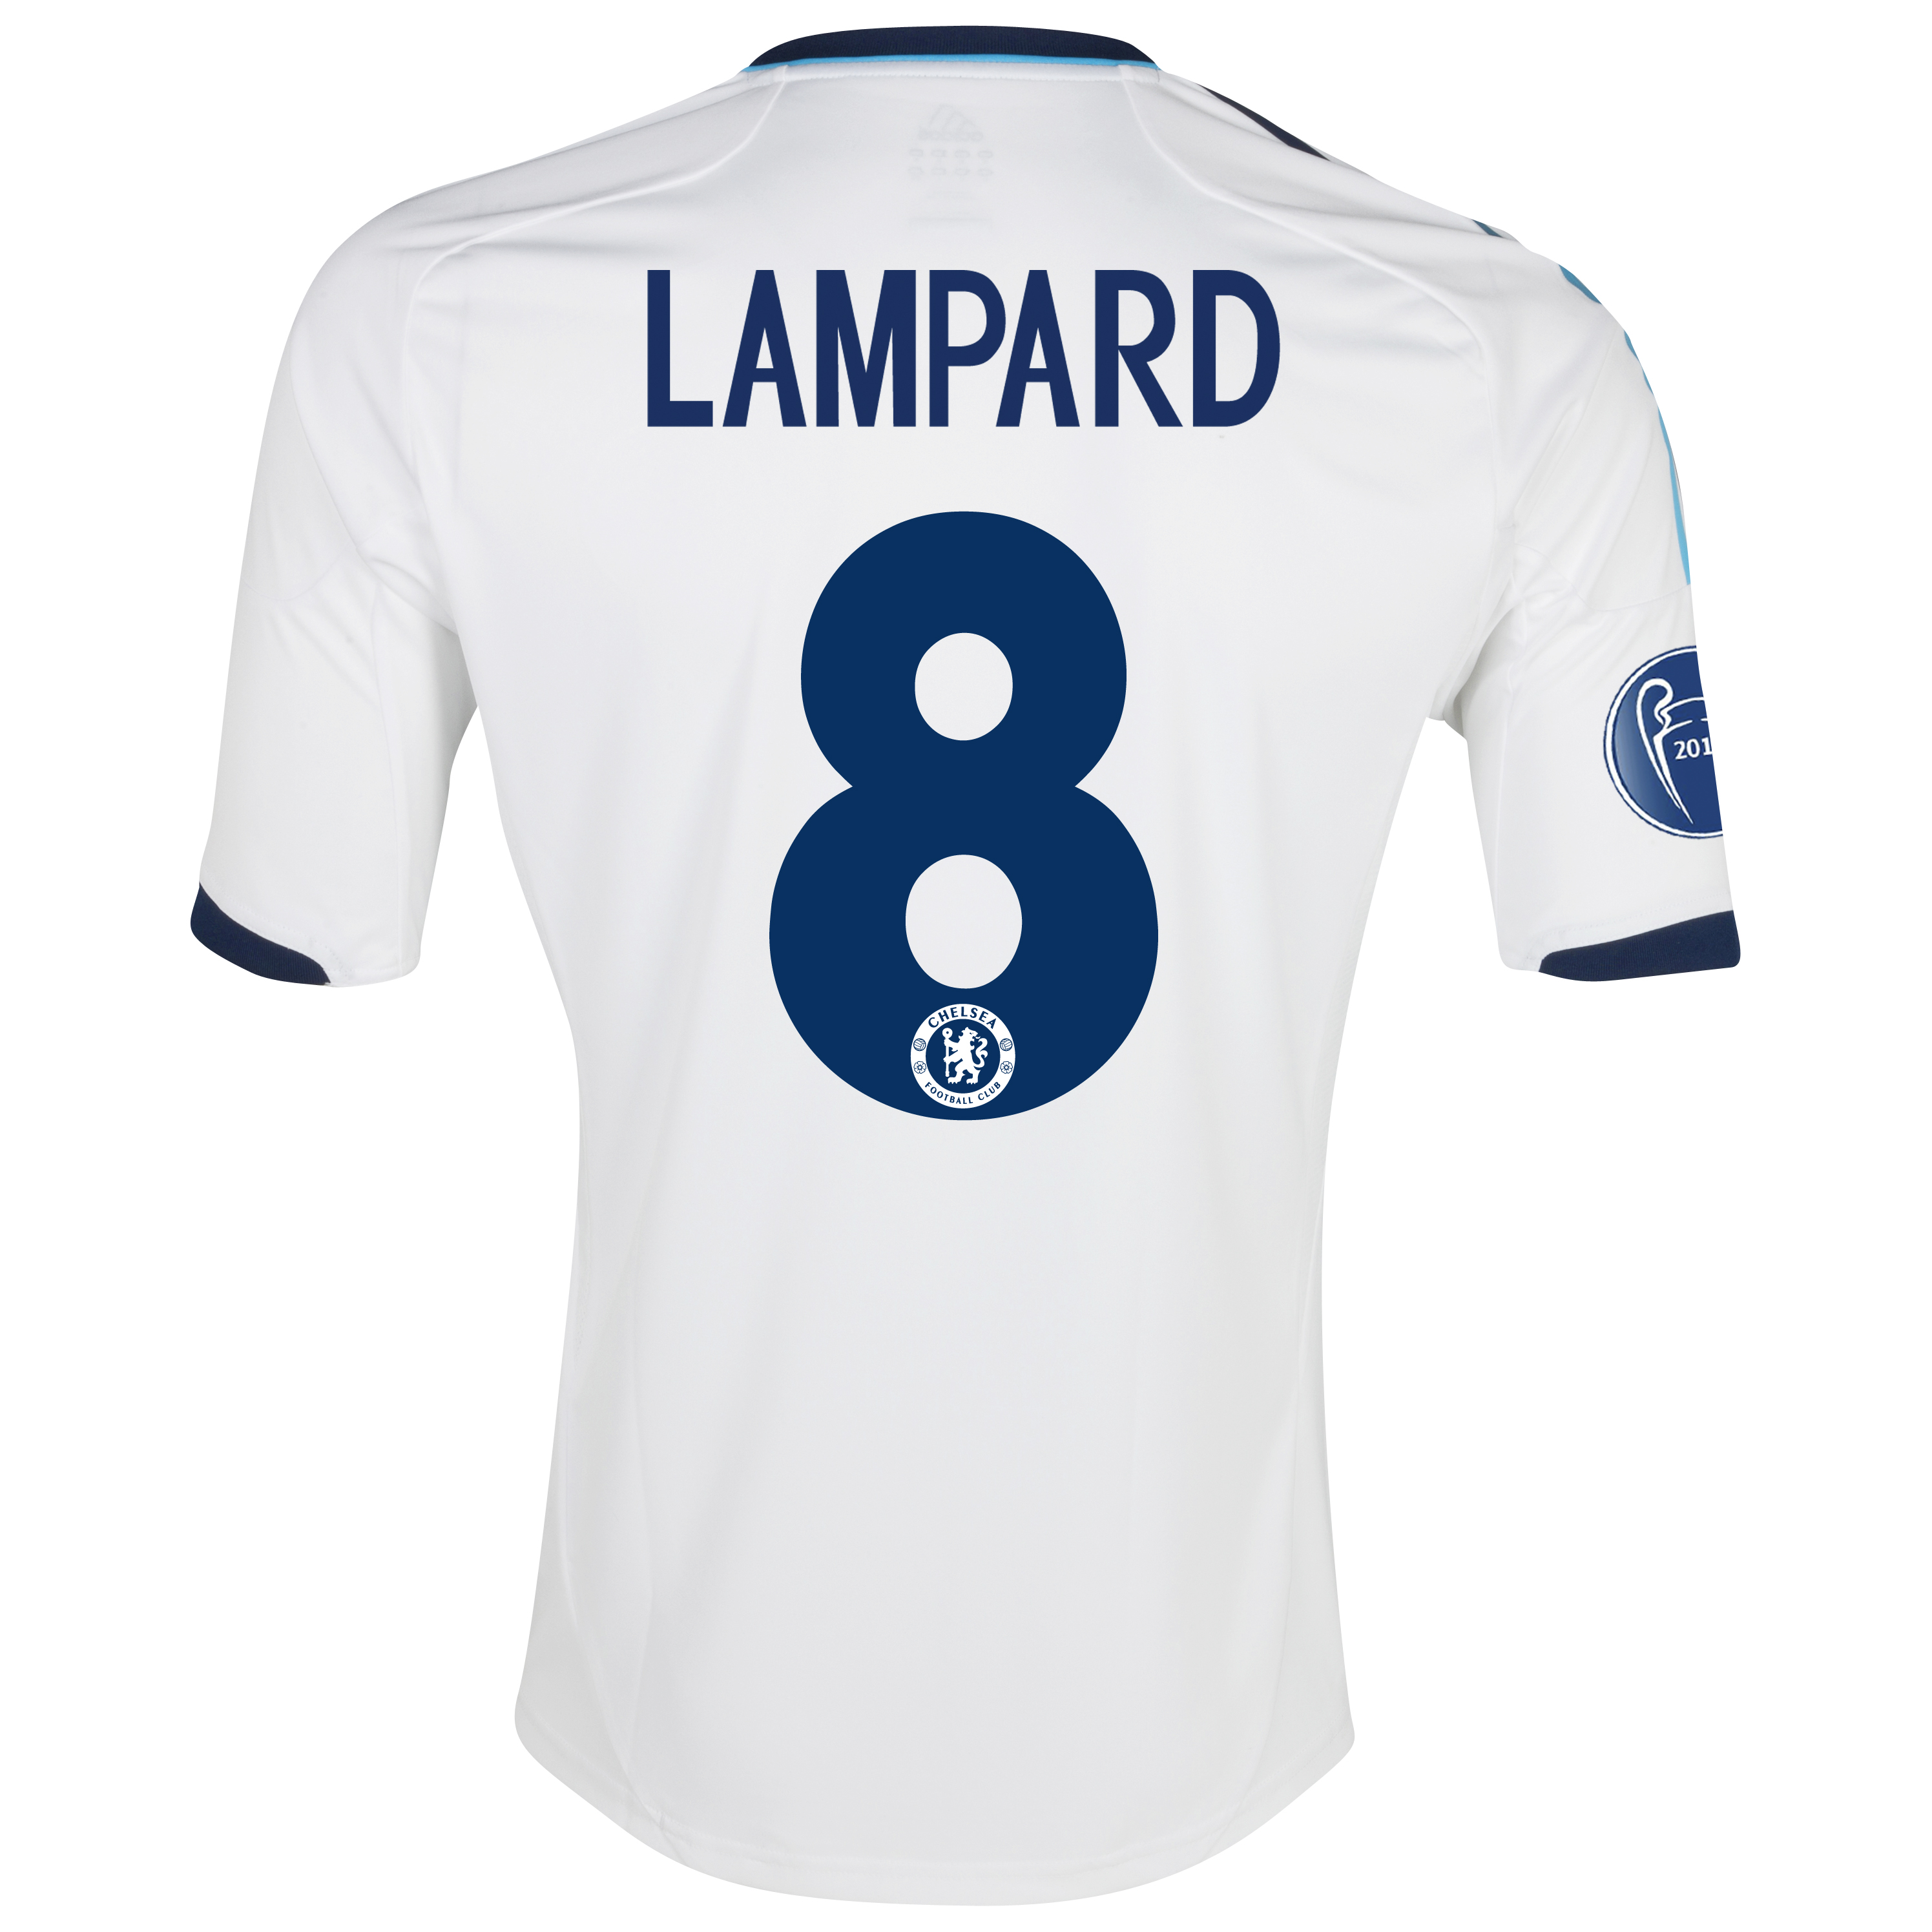 Chelsea UEFA Champions League Shirt Away Shirt 2012/13 - with Lampard 8 printing